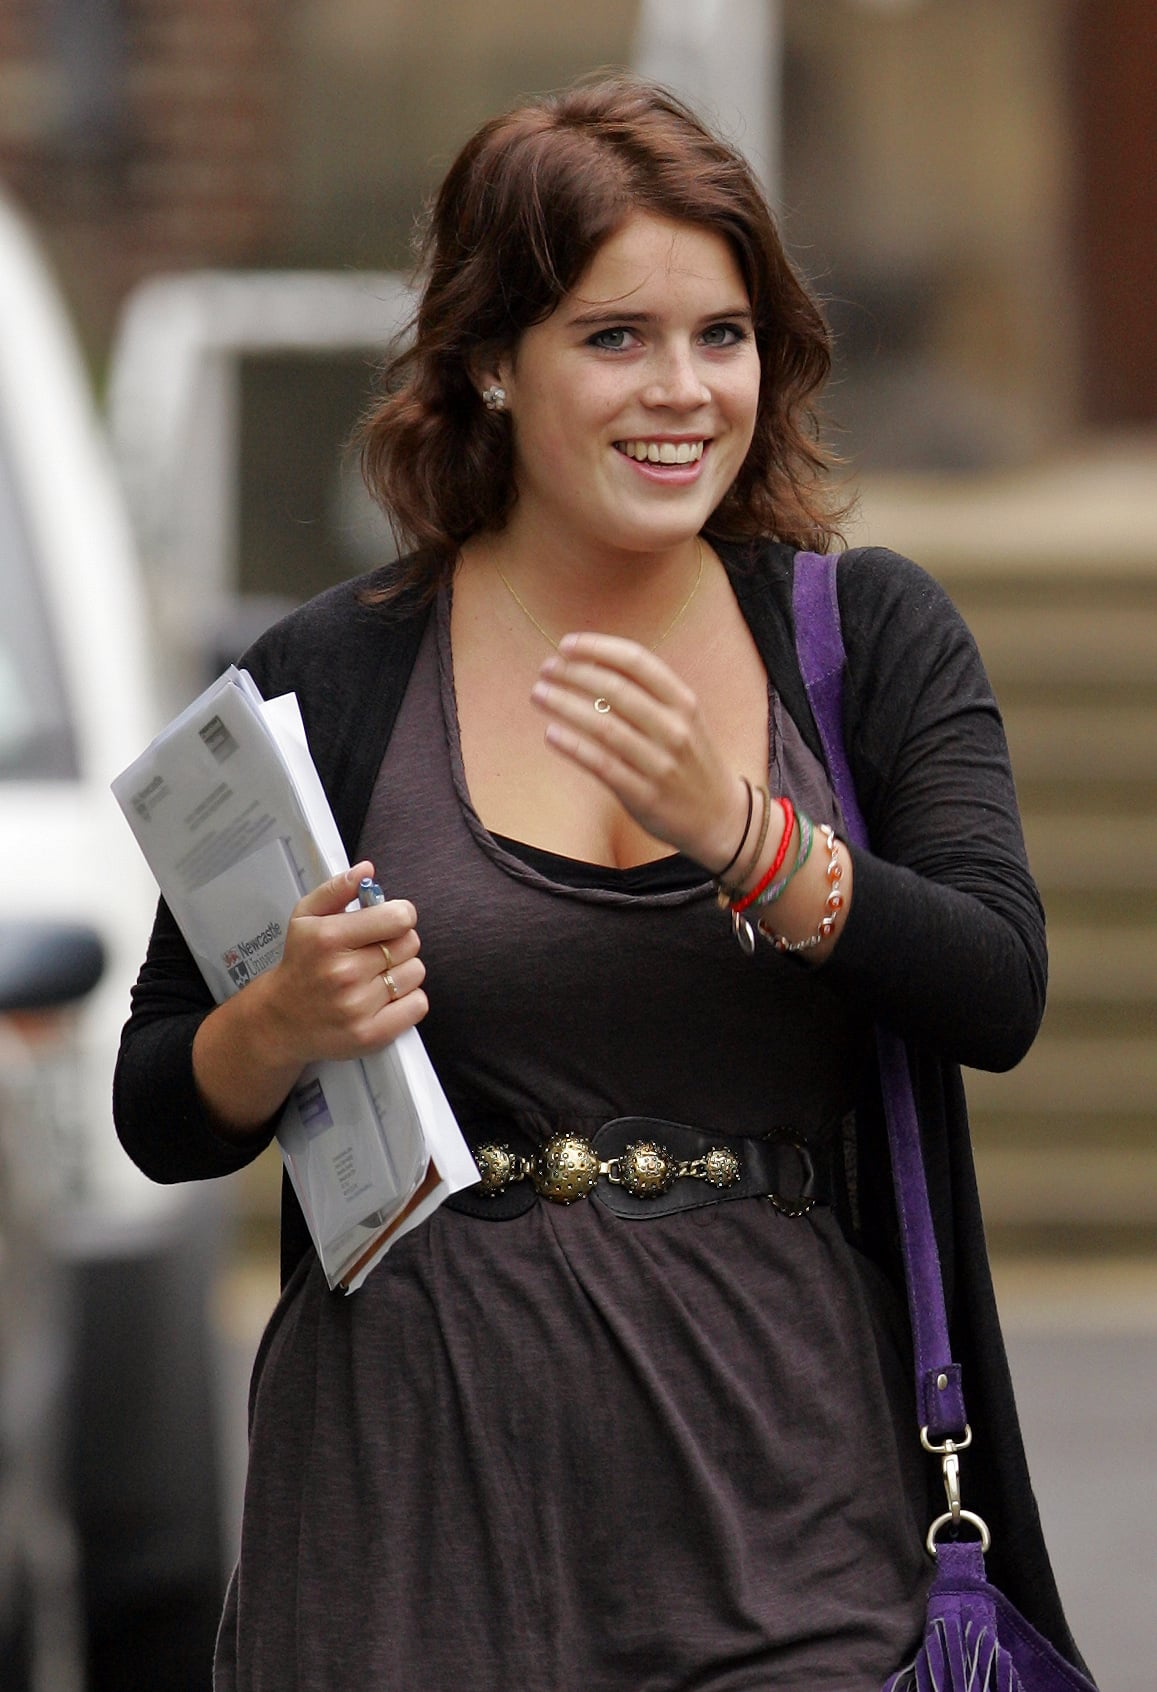 Photos Of Princess Eugenie At Newcastle University